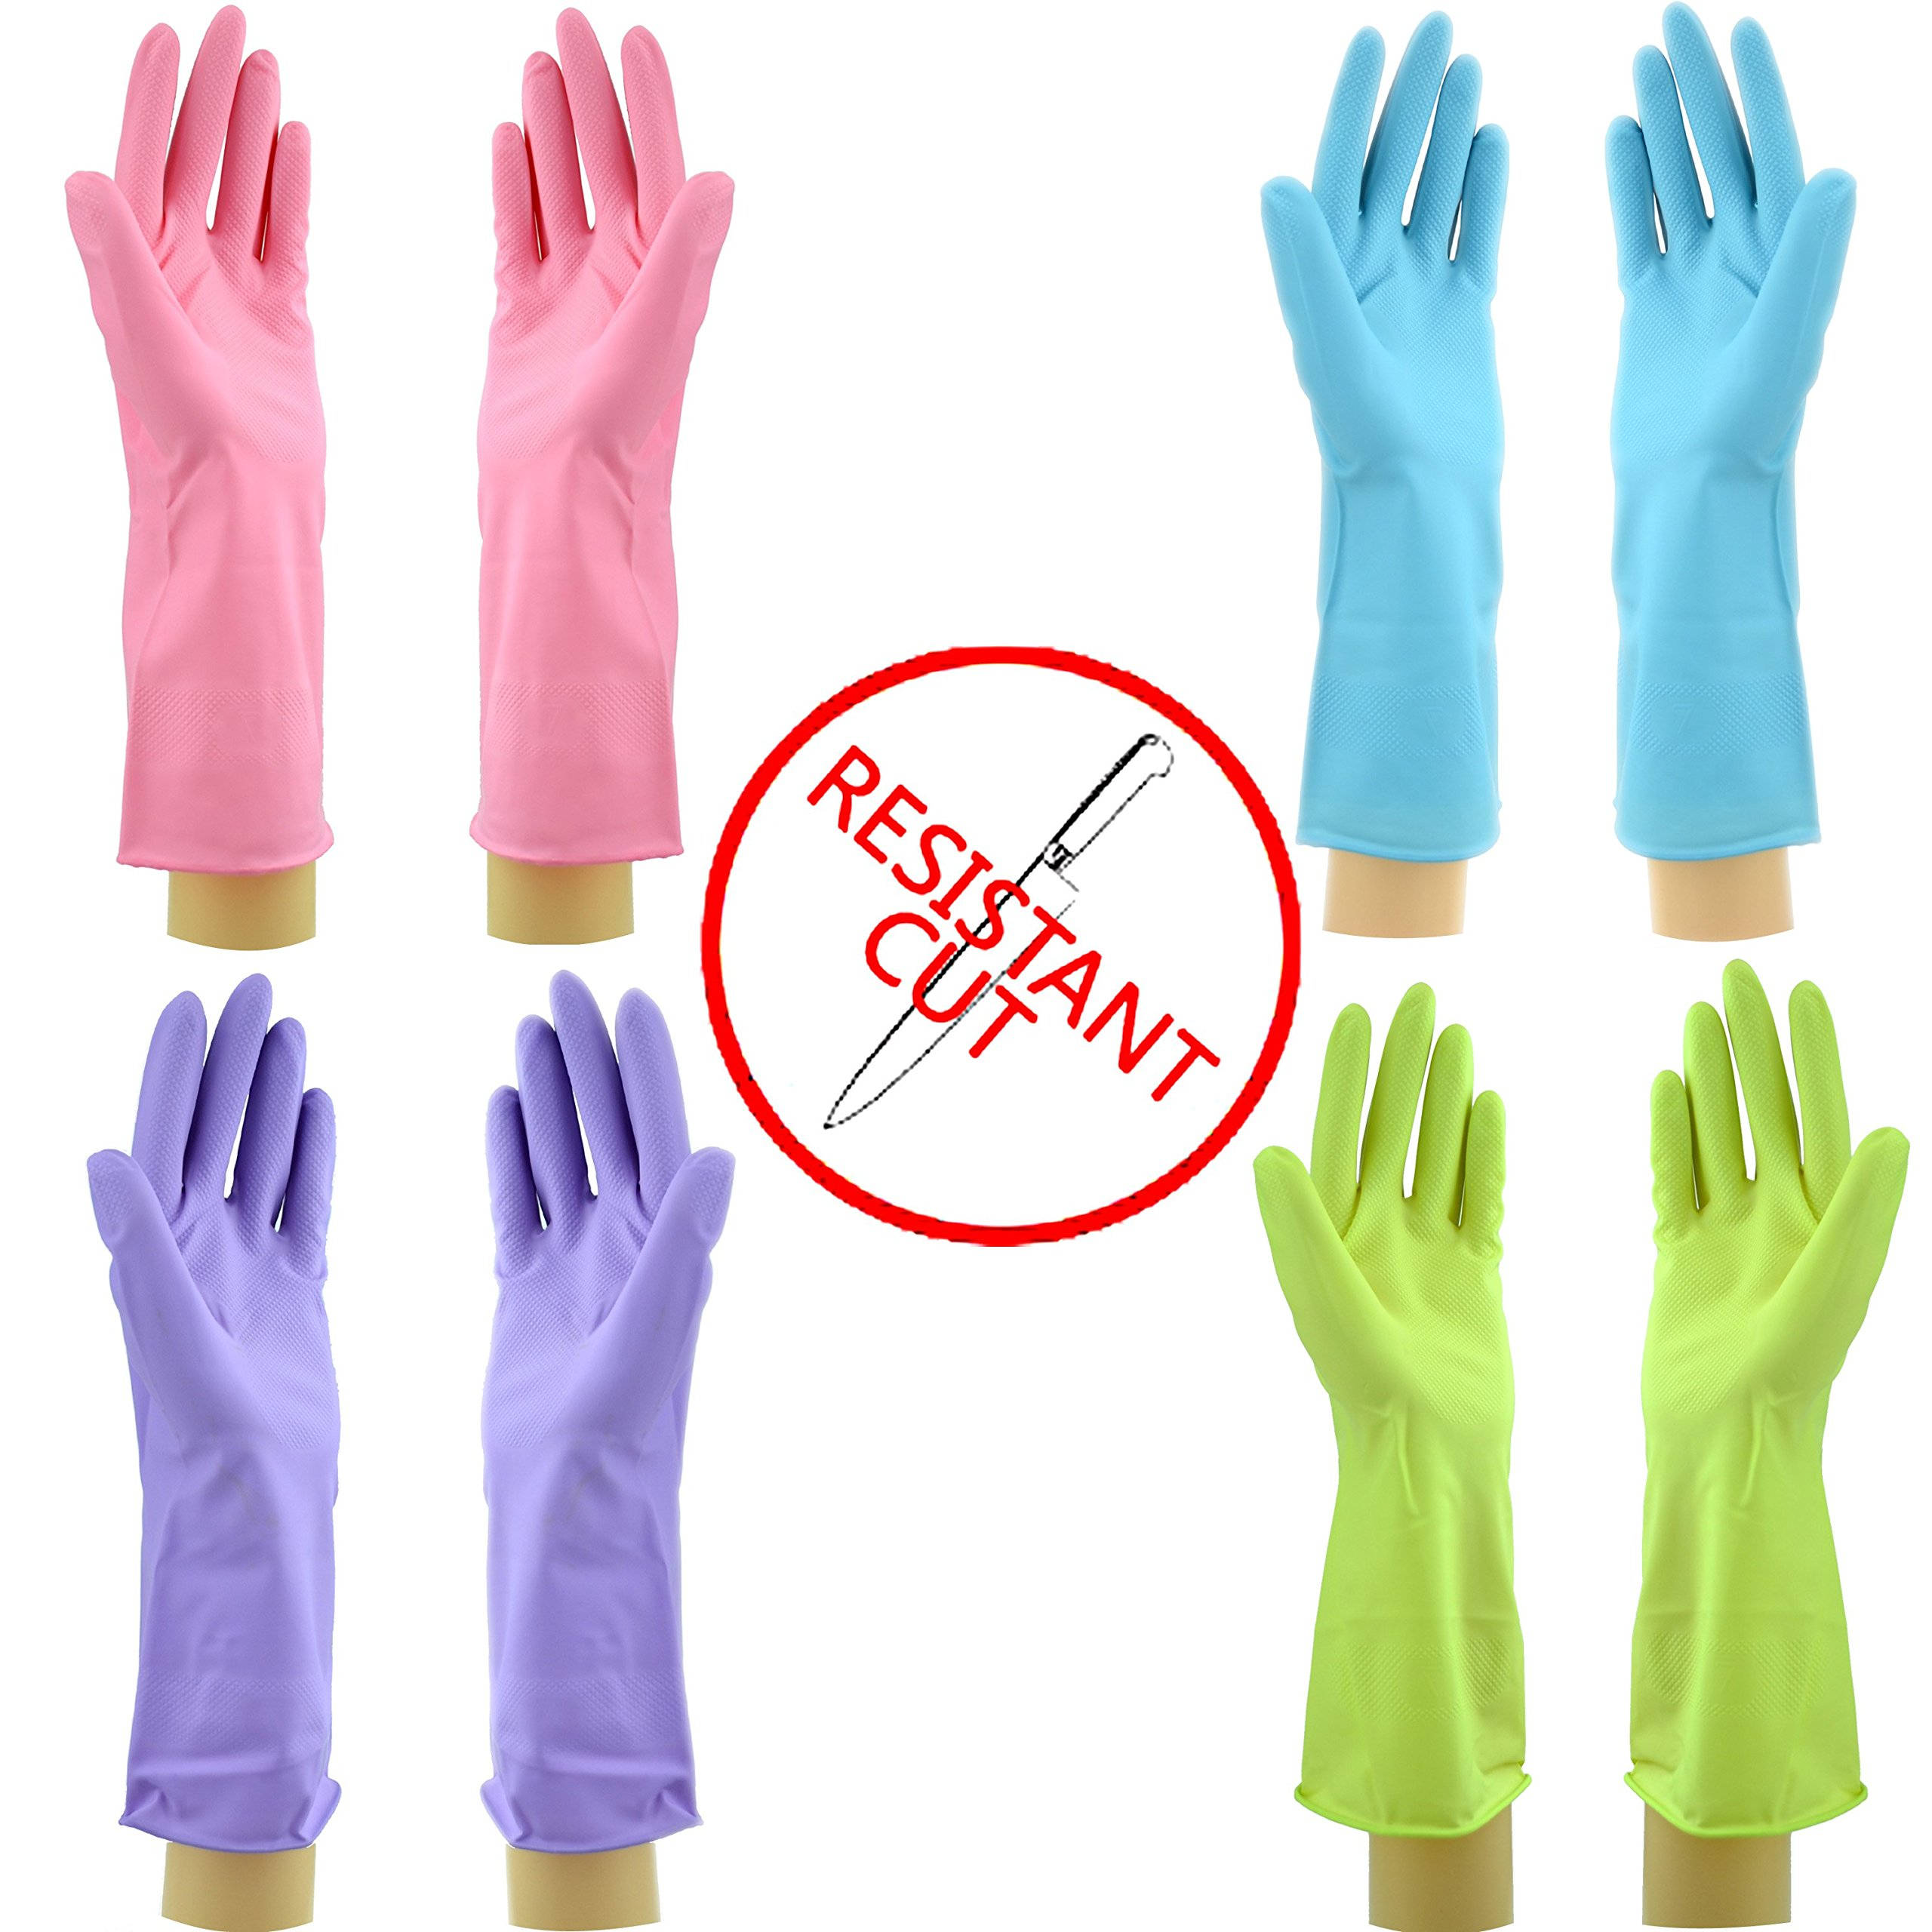 Star Quality Cut Resistant Kitchen Gloves 4 Pairs Set | Durable Latex Gloves Odor Free | Reusable Bathroom Gloves in 4 Colors | Great Value Pack of 2 Pairs M and 2 Pairs L knife-resistant Gloves